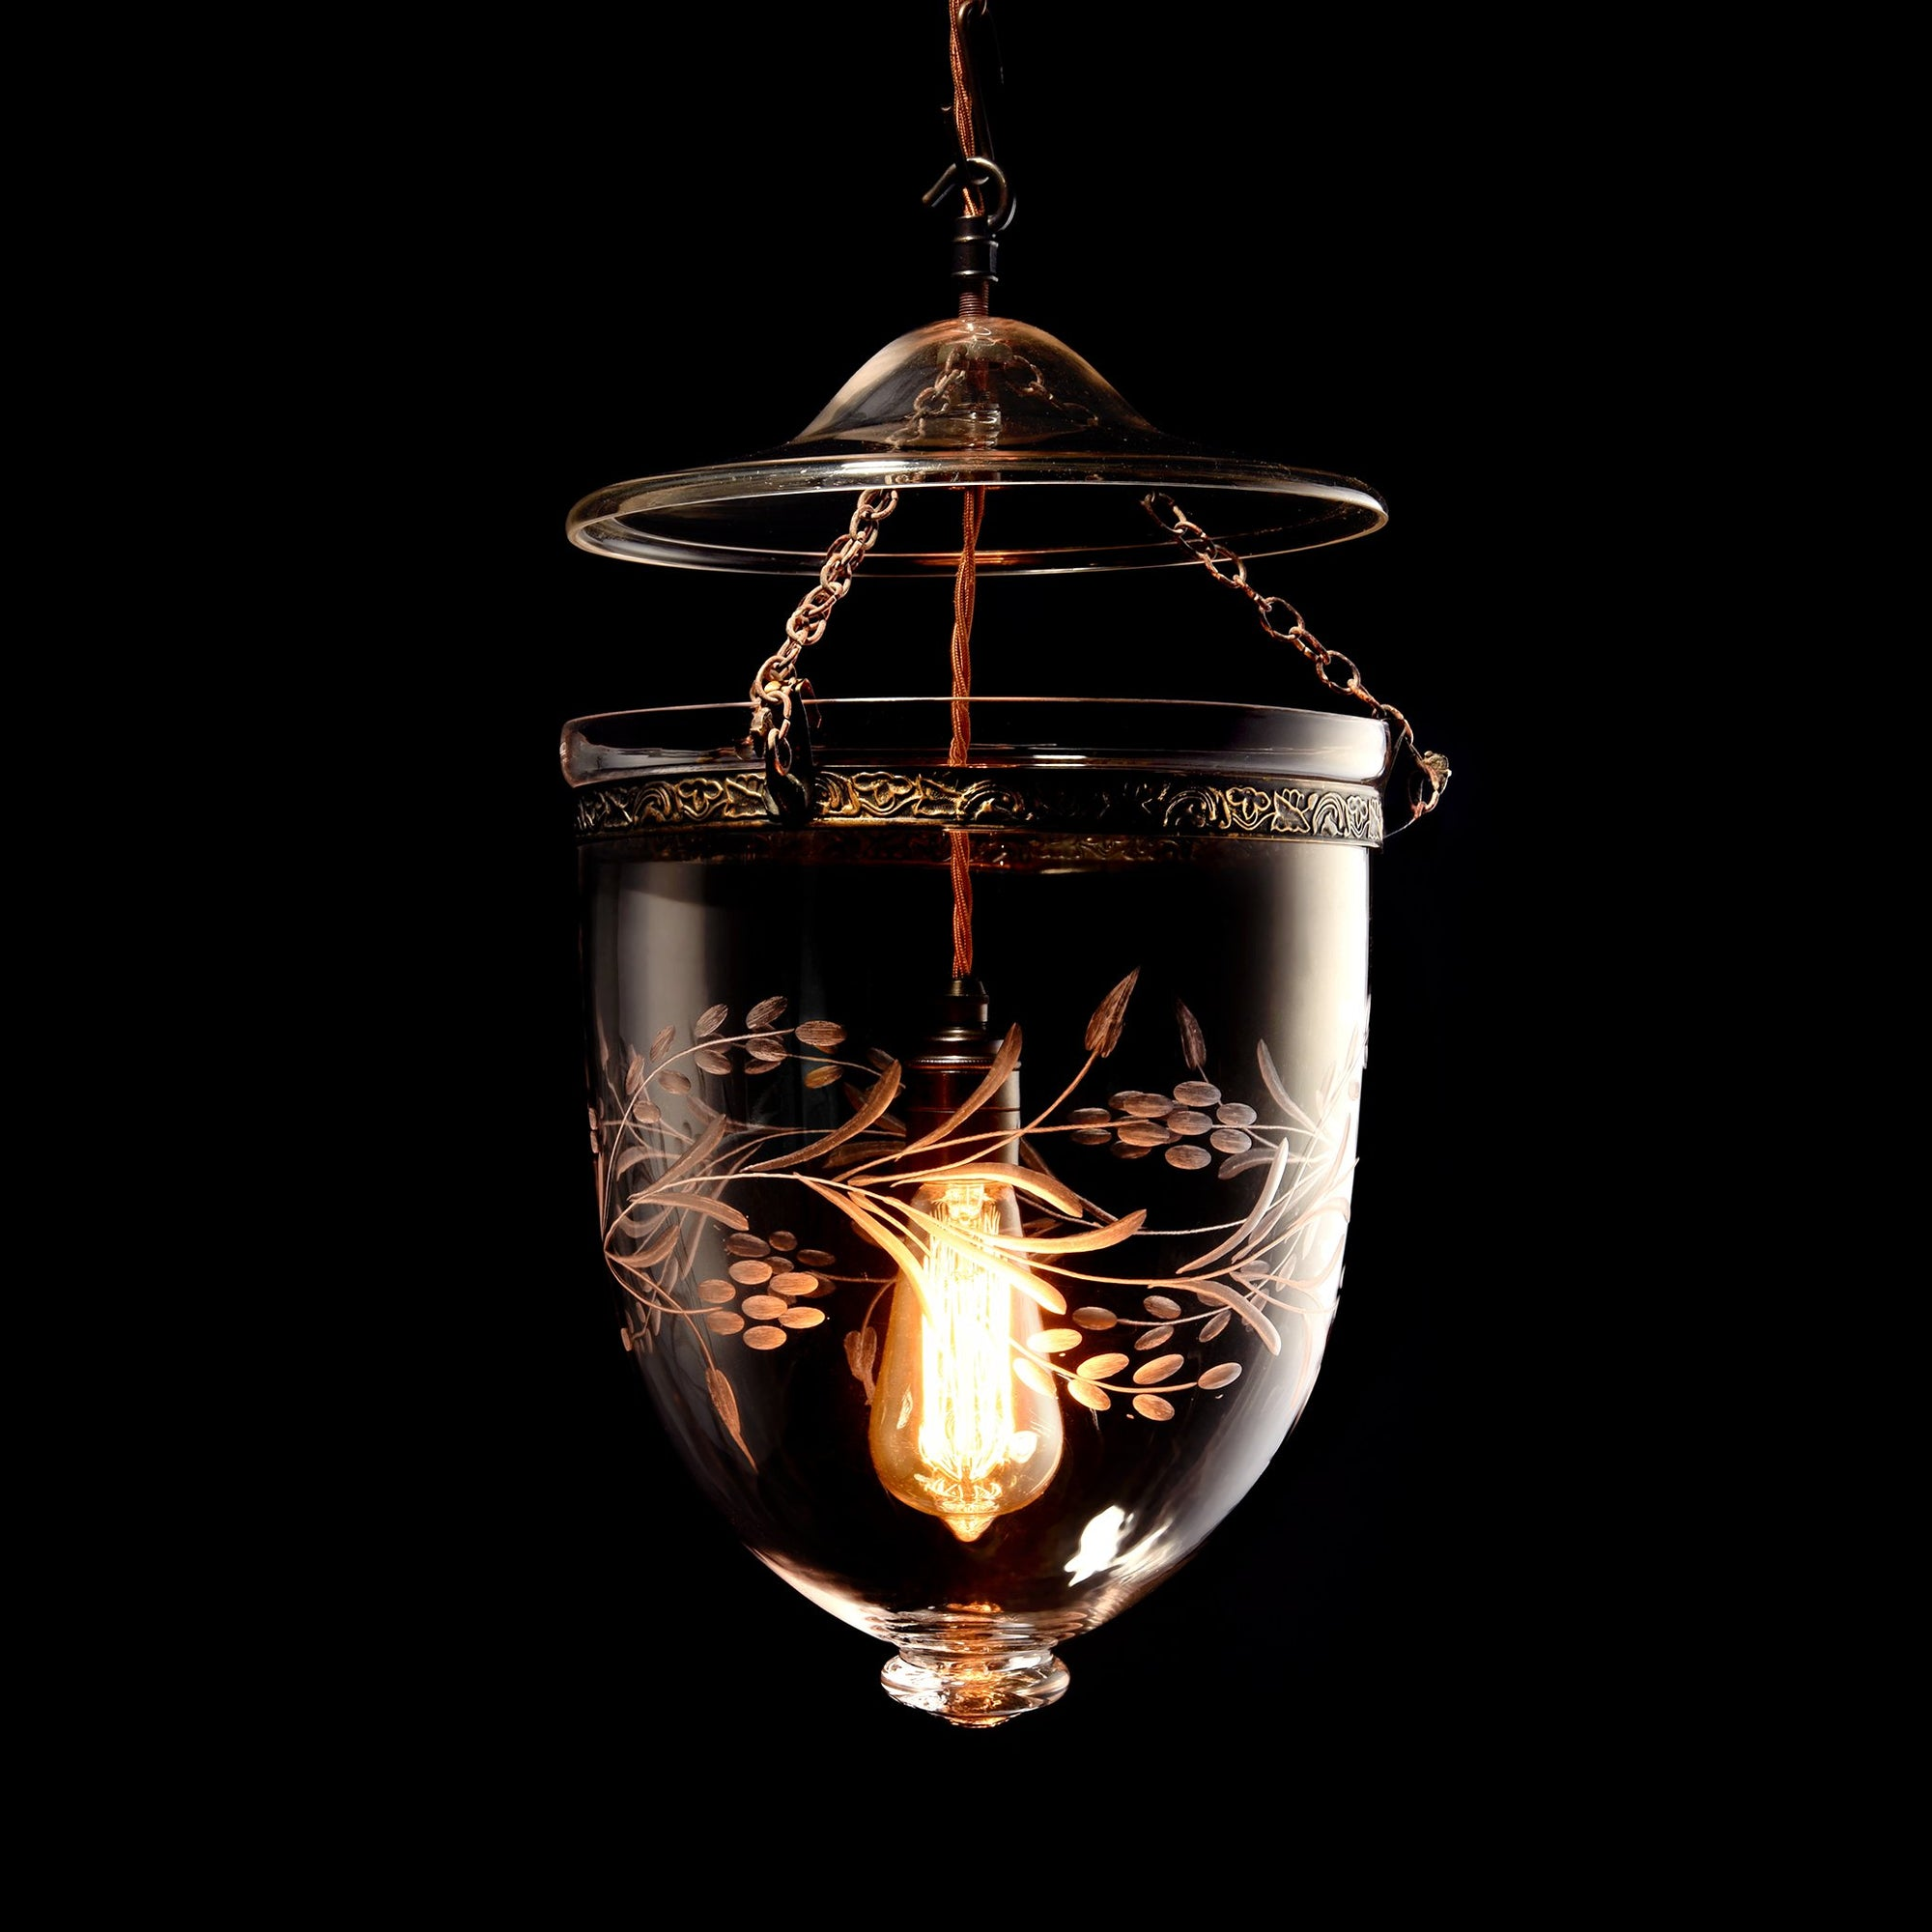 Engraved Glass Hundi Pendant Lamp With Single Fitting - Leaves